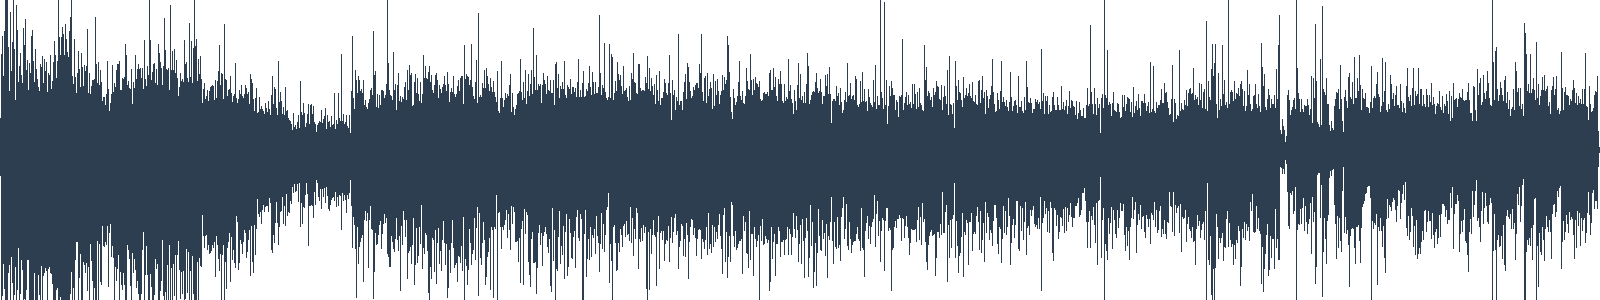 archint 1918_2018: Das Brünner Architekturmanual waveform